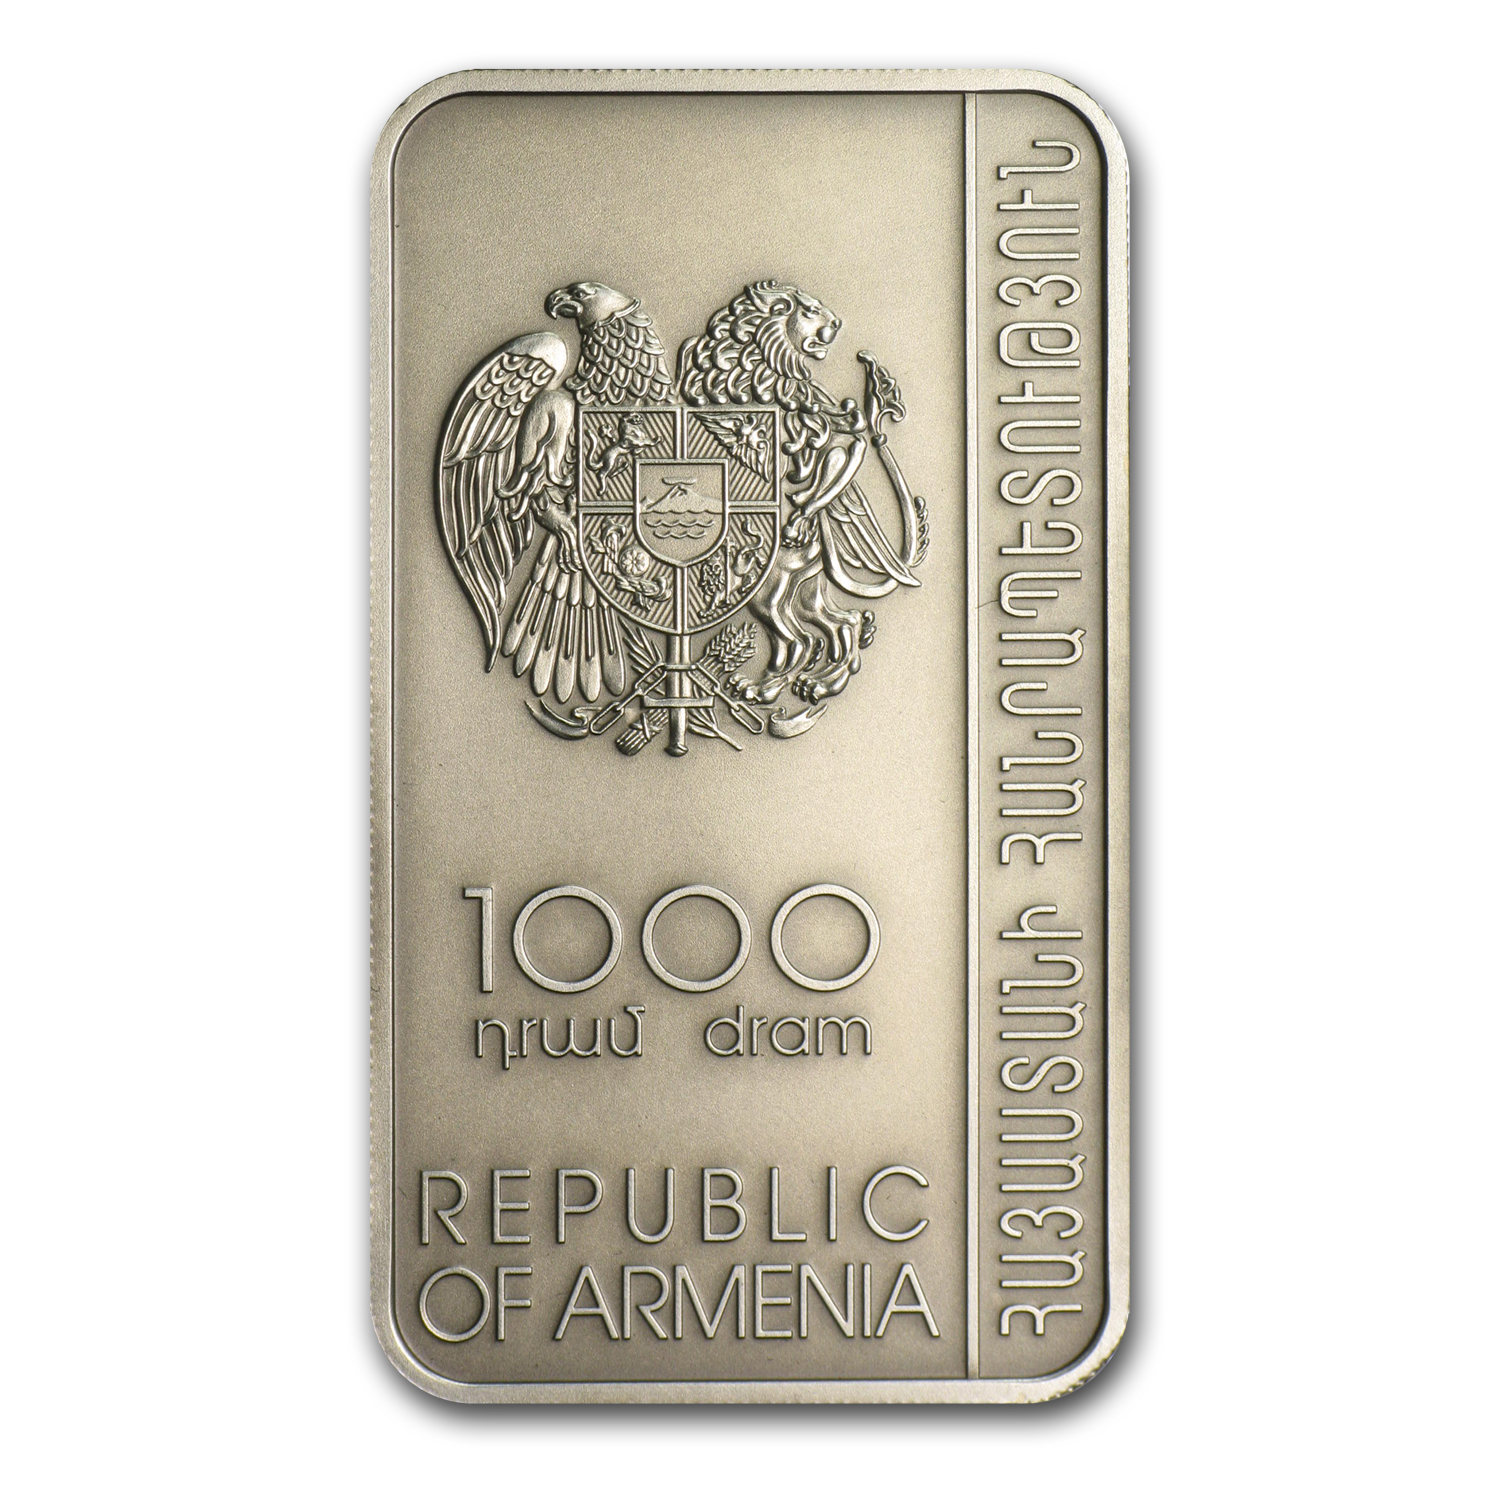 2011 Armenia 1000 Dram Cross-Stones of Armenia The Kecharis